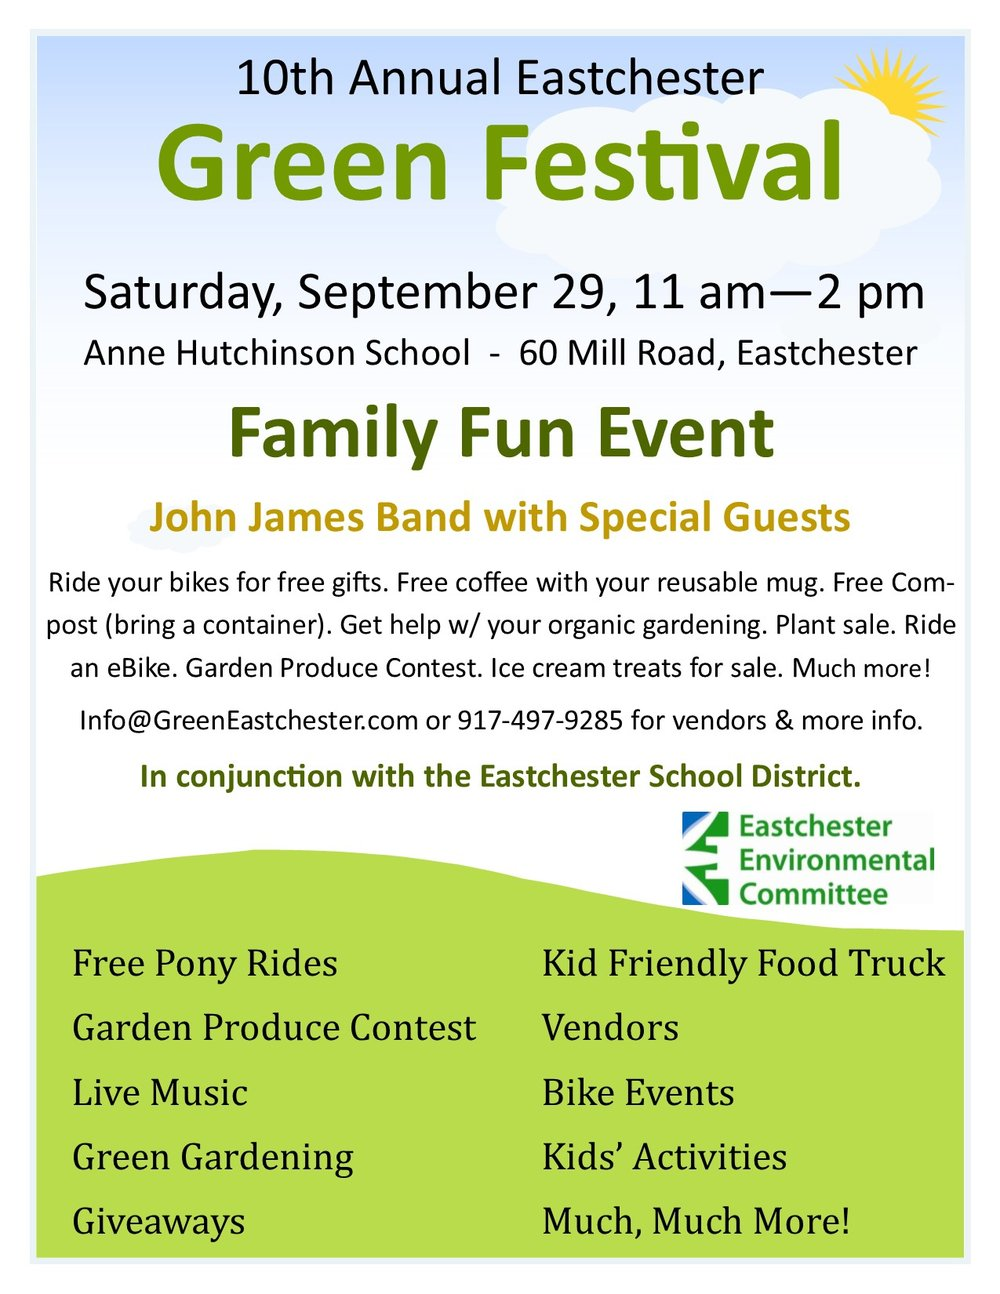 10th Annual Eastchester Green Festival.jpg